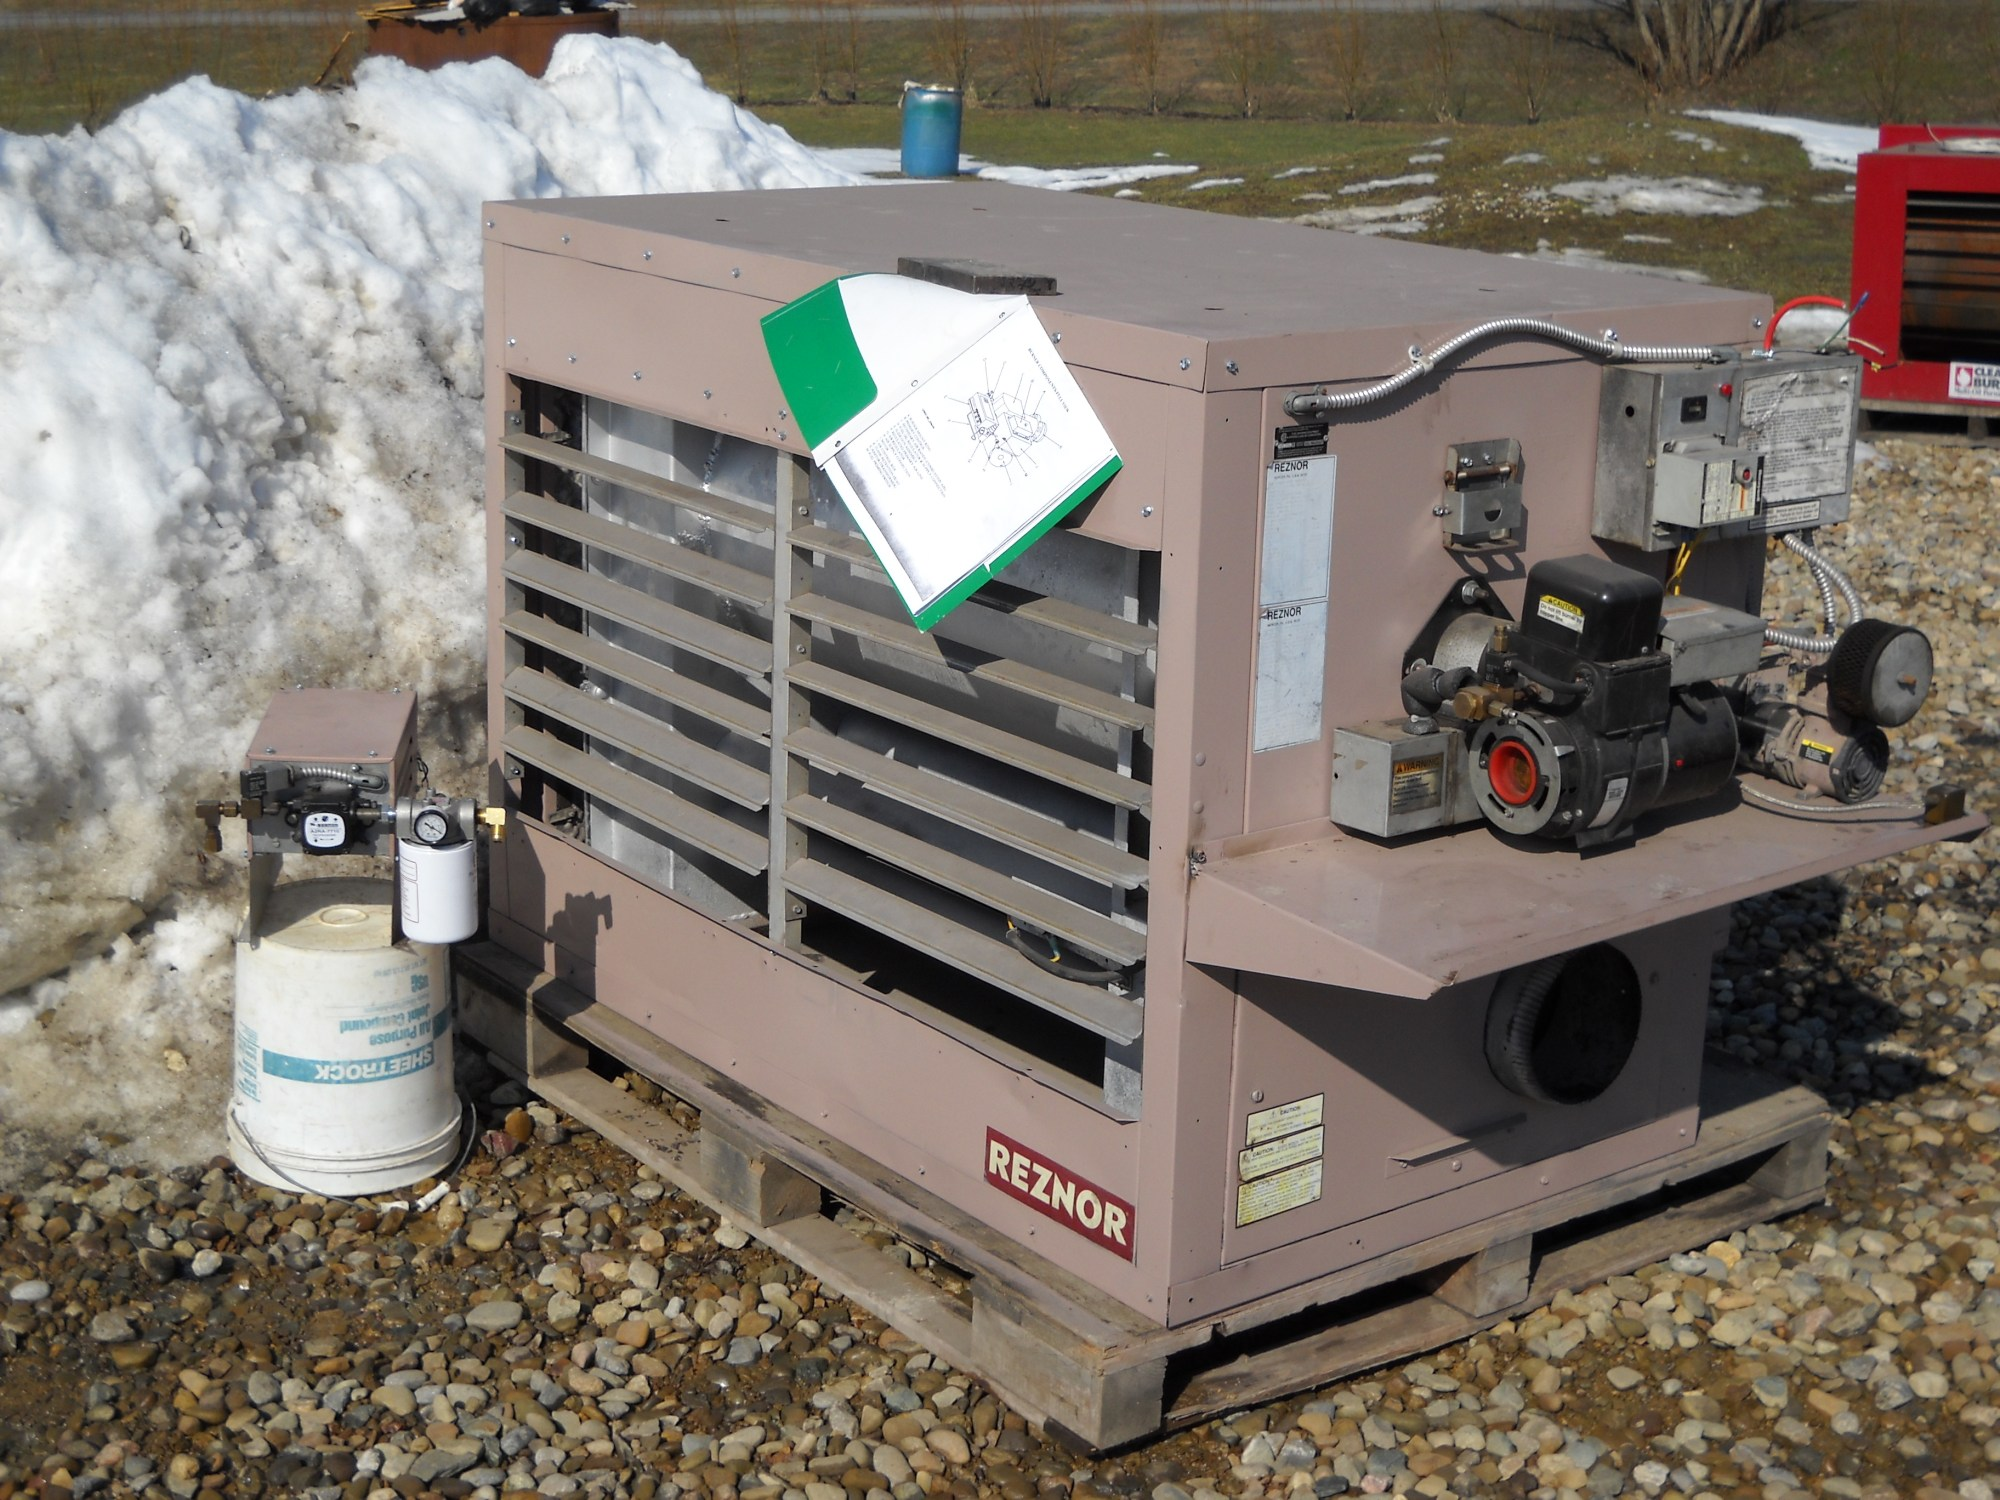 hight resolution of reznor page these waste oil heaters are equiped with air rh centralohioheaters com reznor waste oil heater wiring diagram reznor waste oil heater for sale